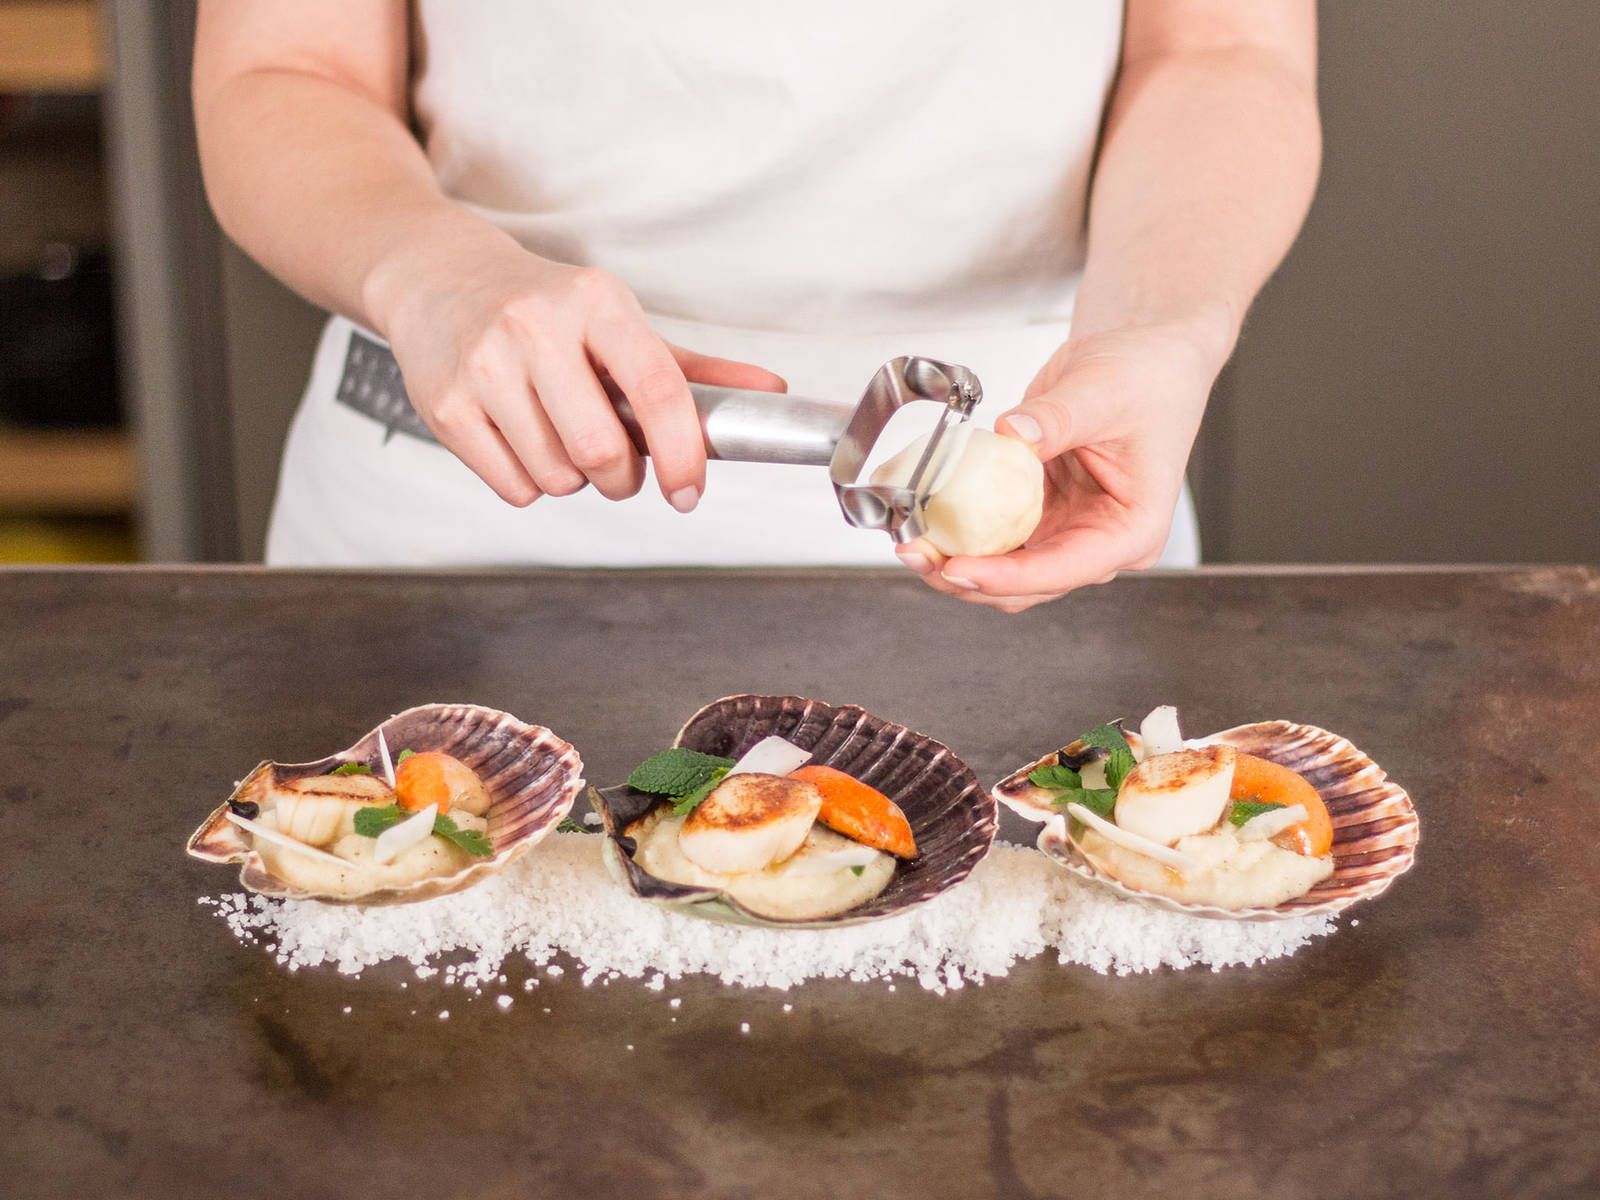 Remove leaves from cilantro and mint. Arrange sunchoke purée on a serving plate, top with scallops, and garnish with mint, cilantro, and some freshly peeled sunchokes.